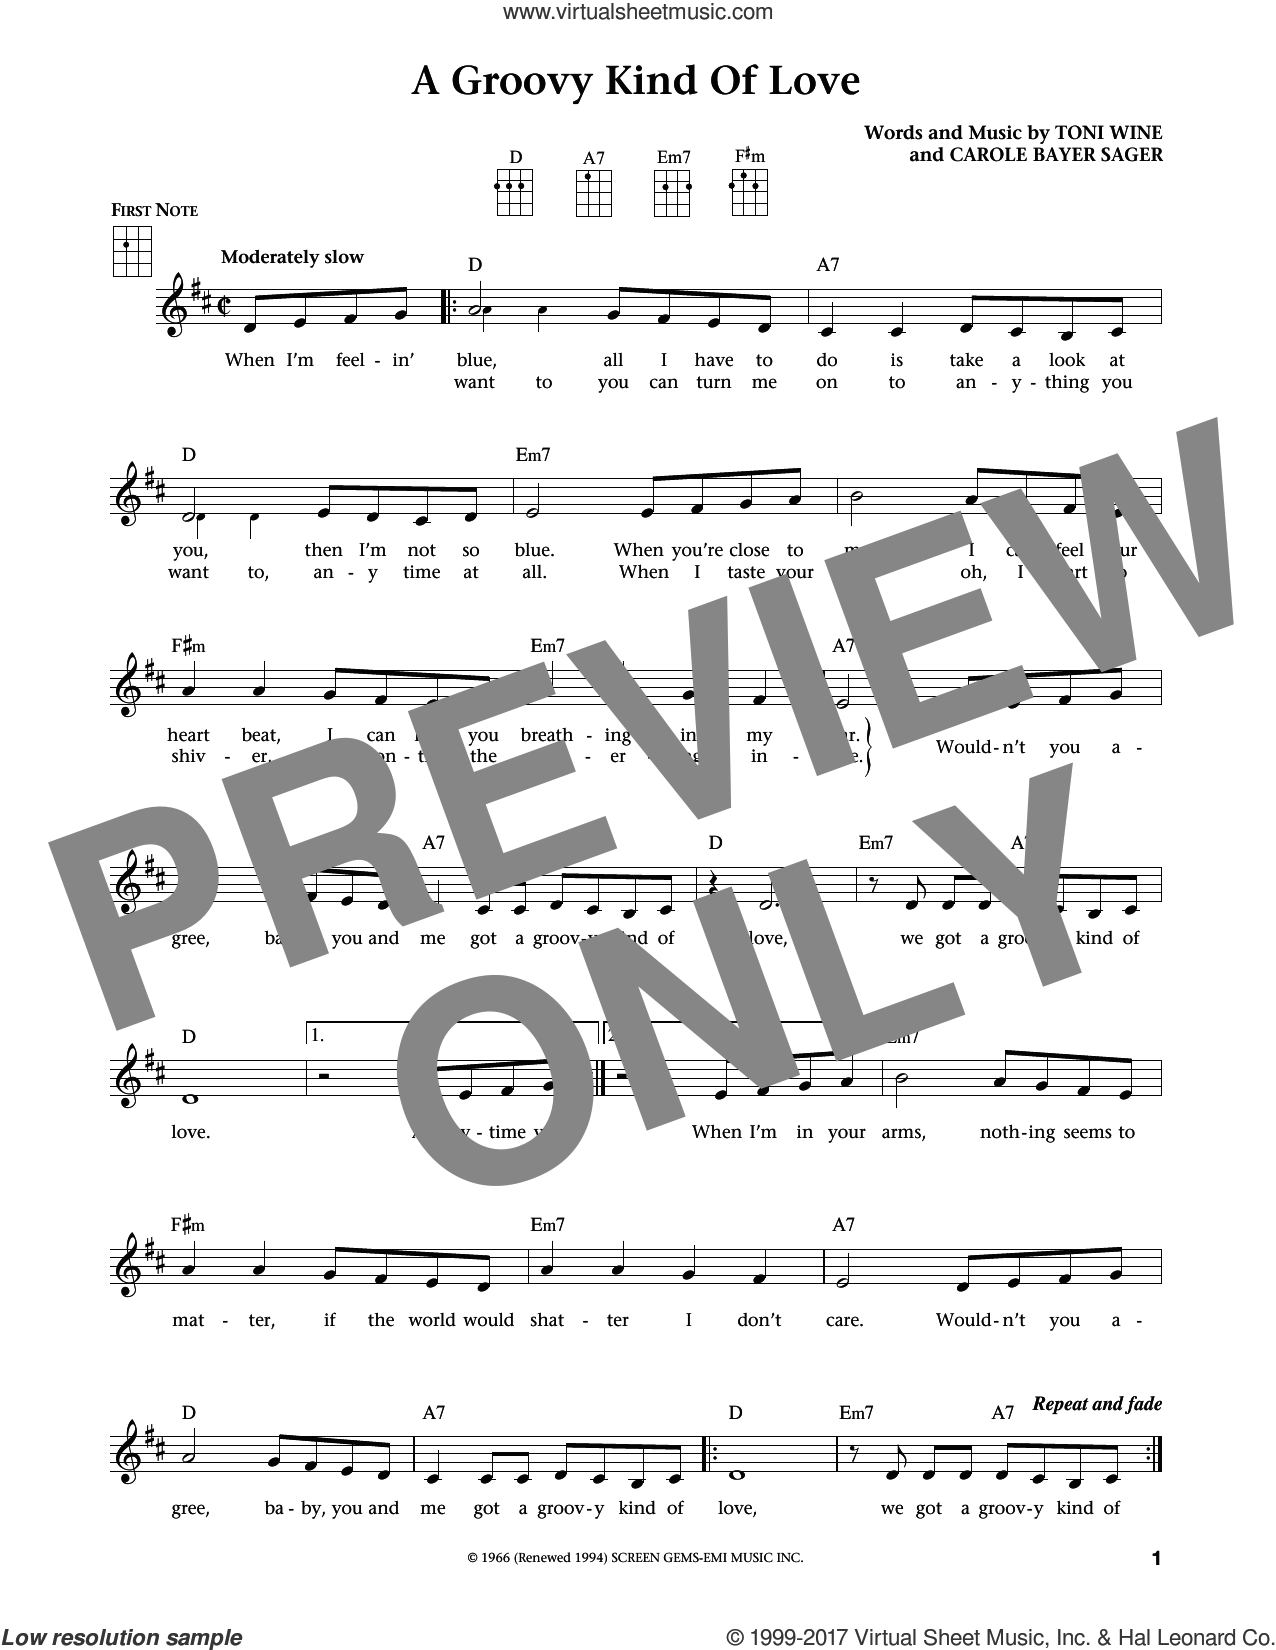 A Groovy Kind Of Love sheet music for ukulele by The Mindbenders, Jim Beloff, Liz Beloff, Phil Collins and Carole Bayer Sager, intermediate skill level